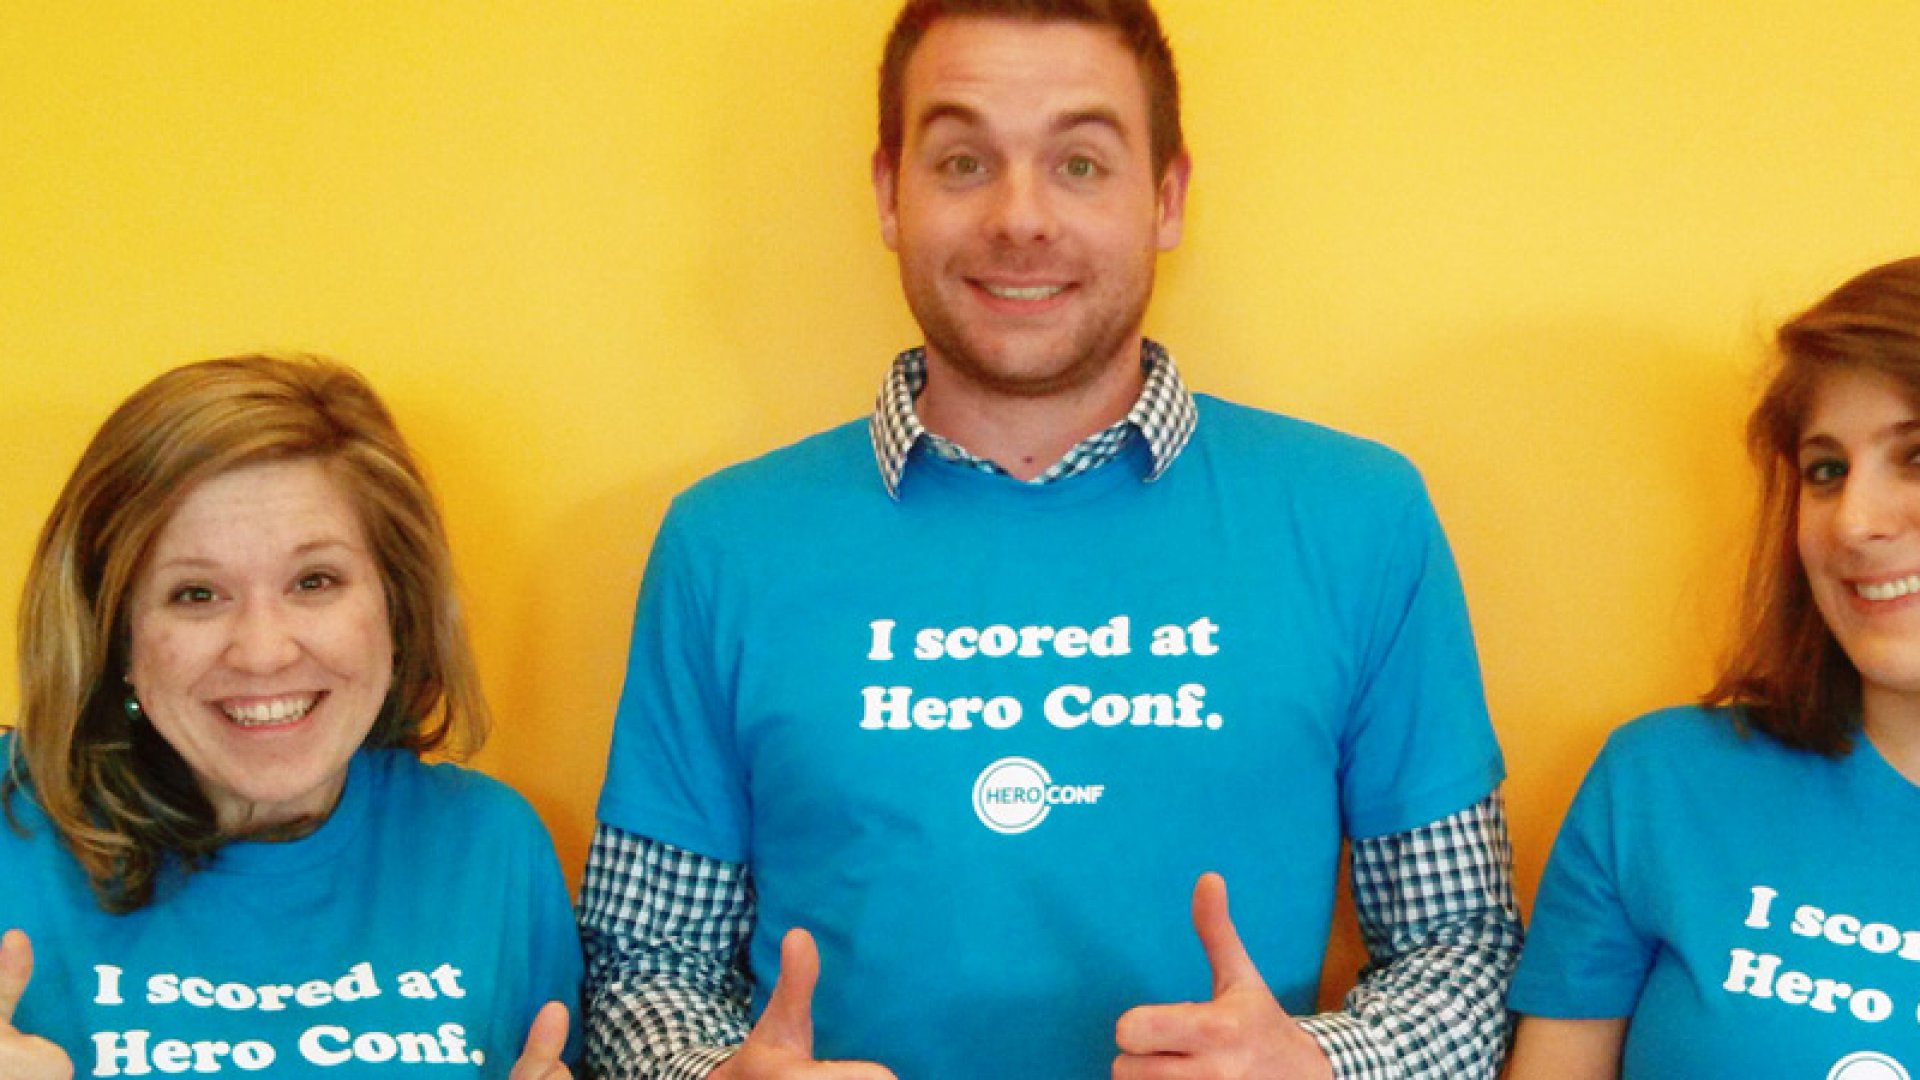 WordStream employees (including Gwozdz, on the left) wearing the t-shirts they handed out at Hanapin Marketing's Hero Conf in Austin.